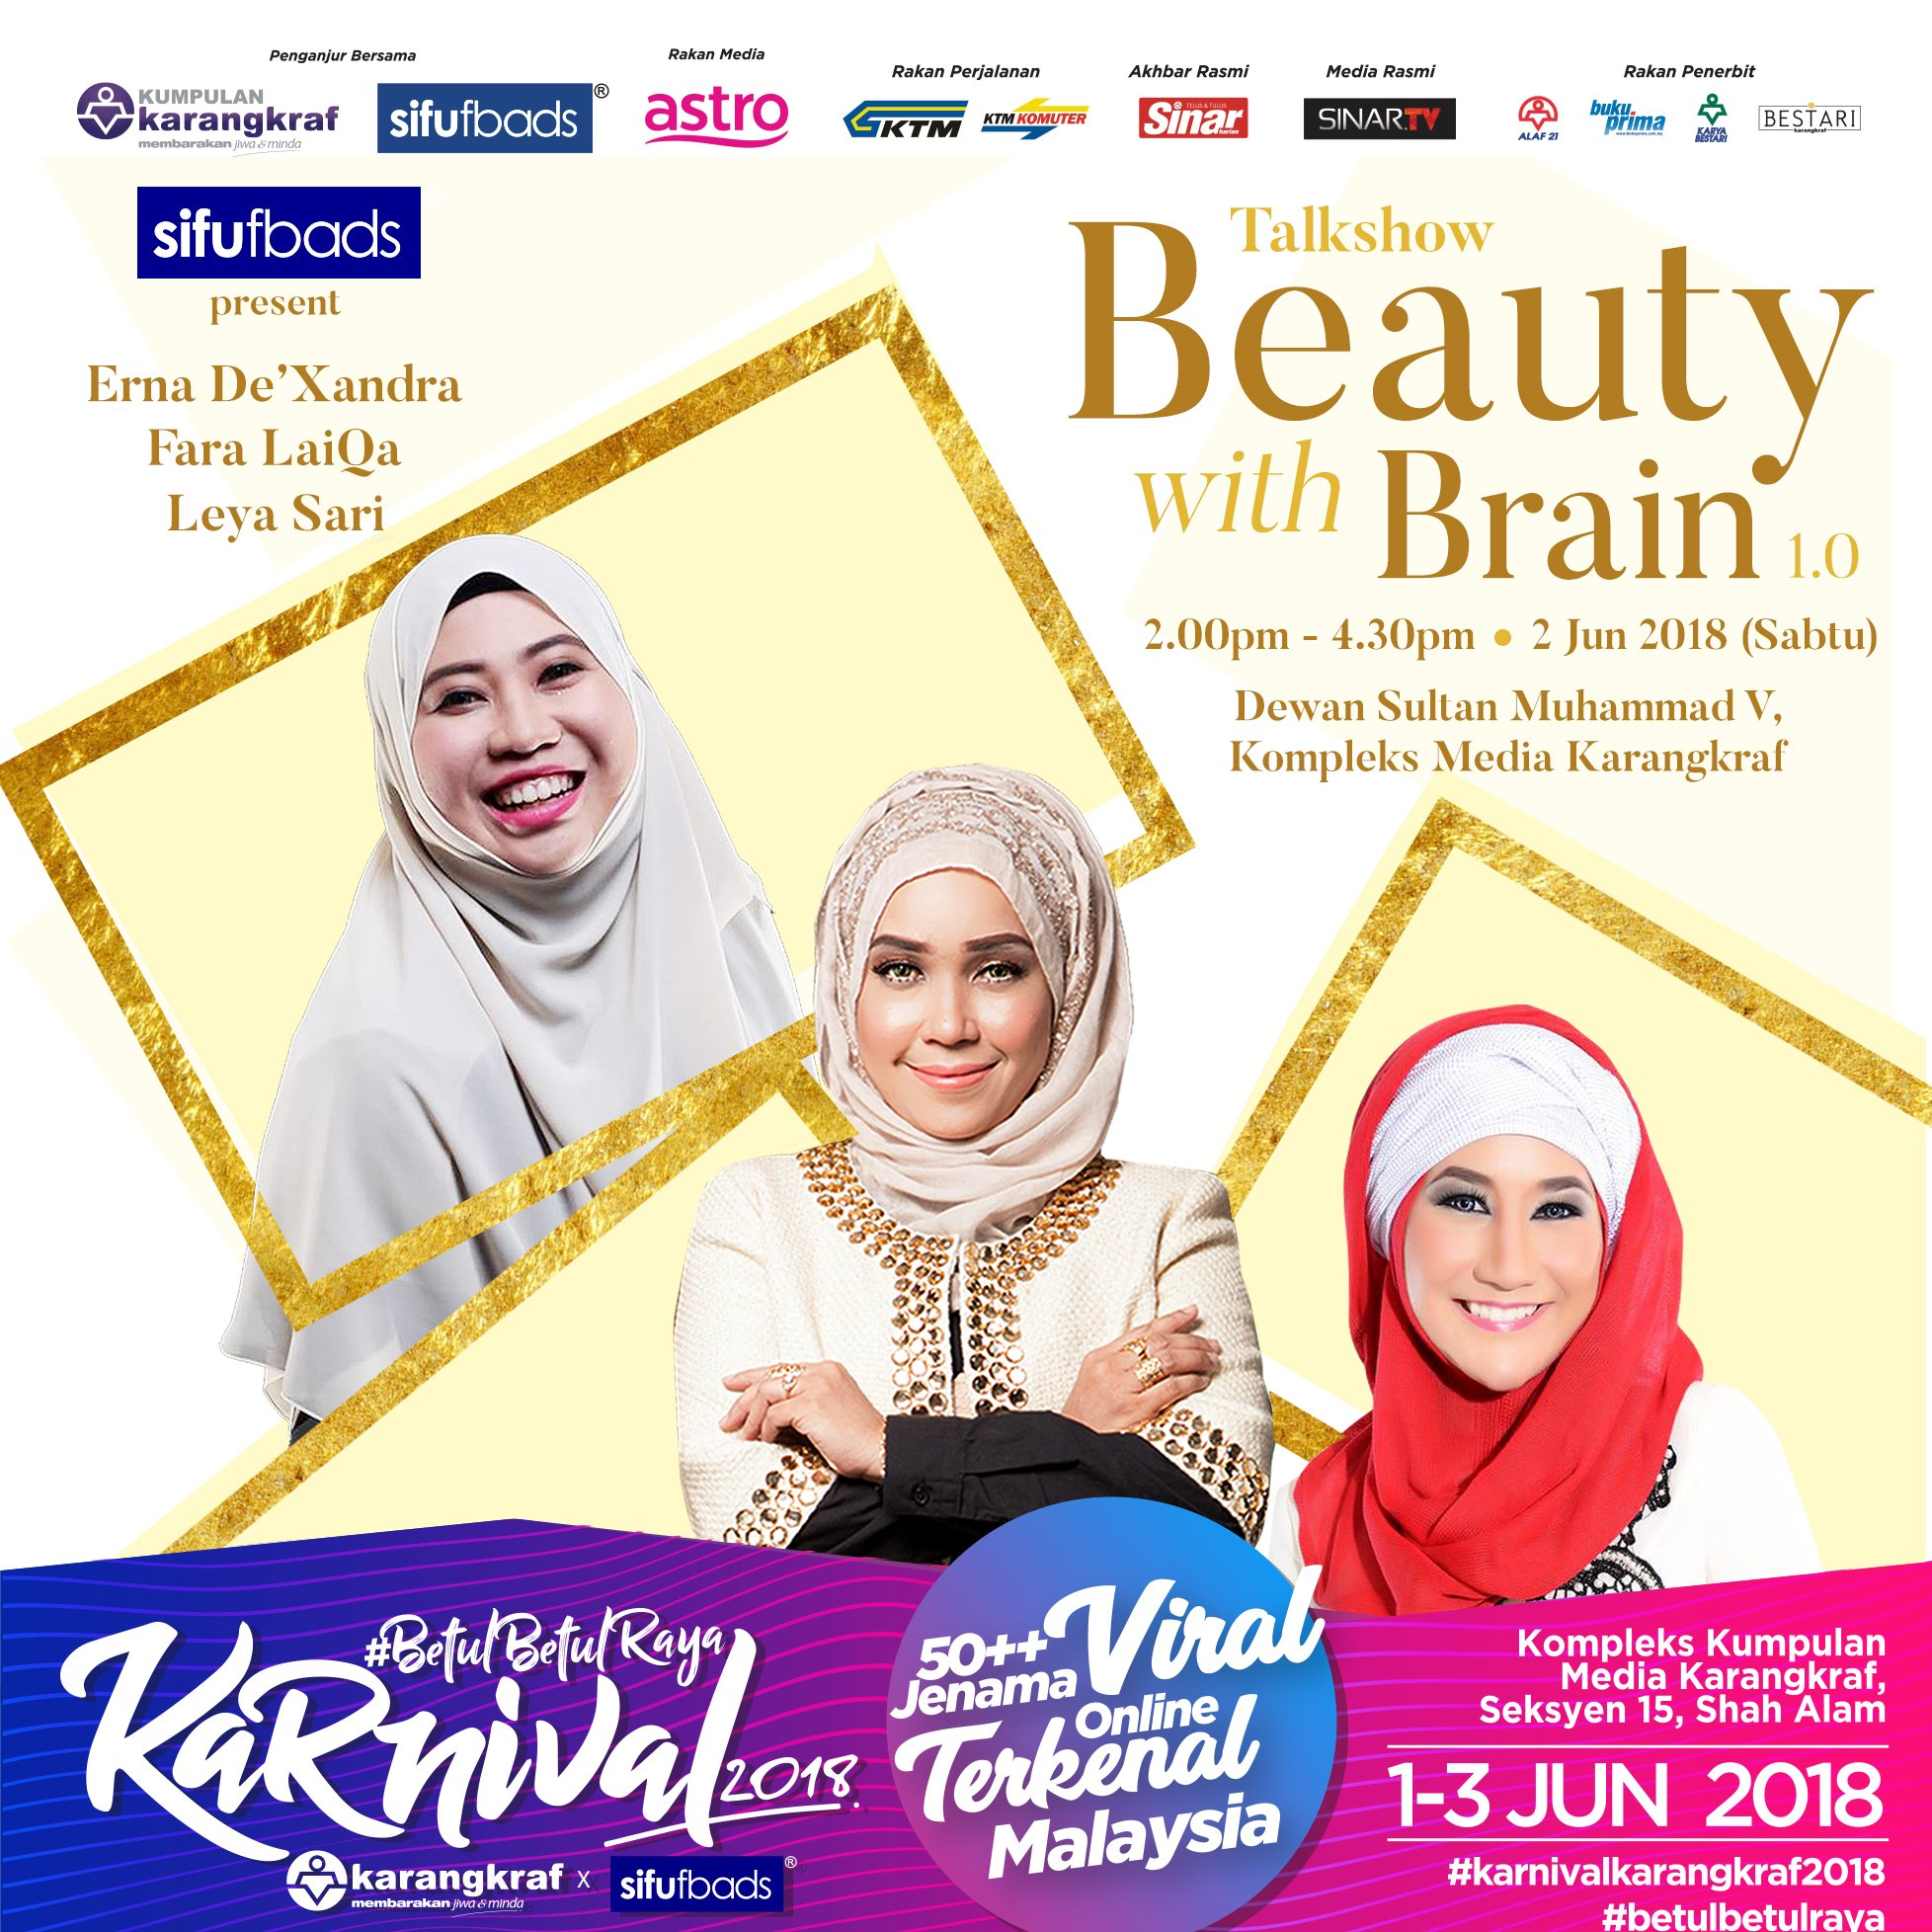 Beauty with Brain 1.0